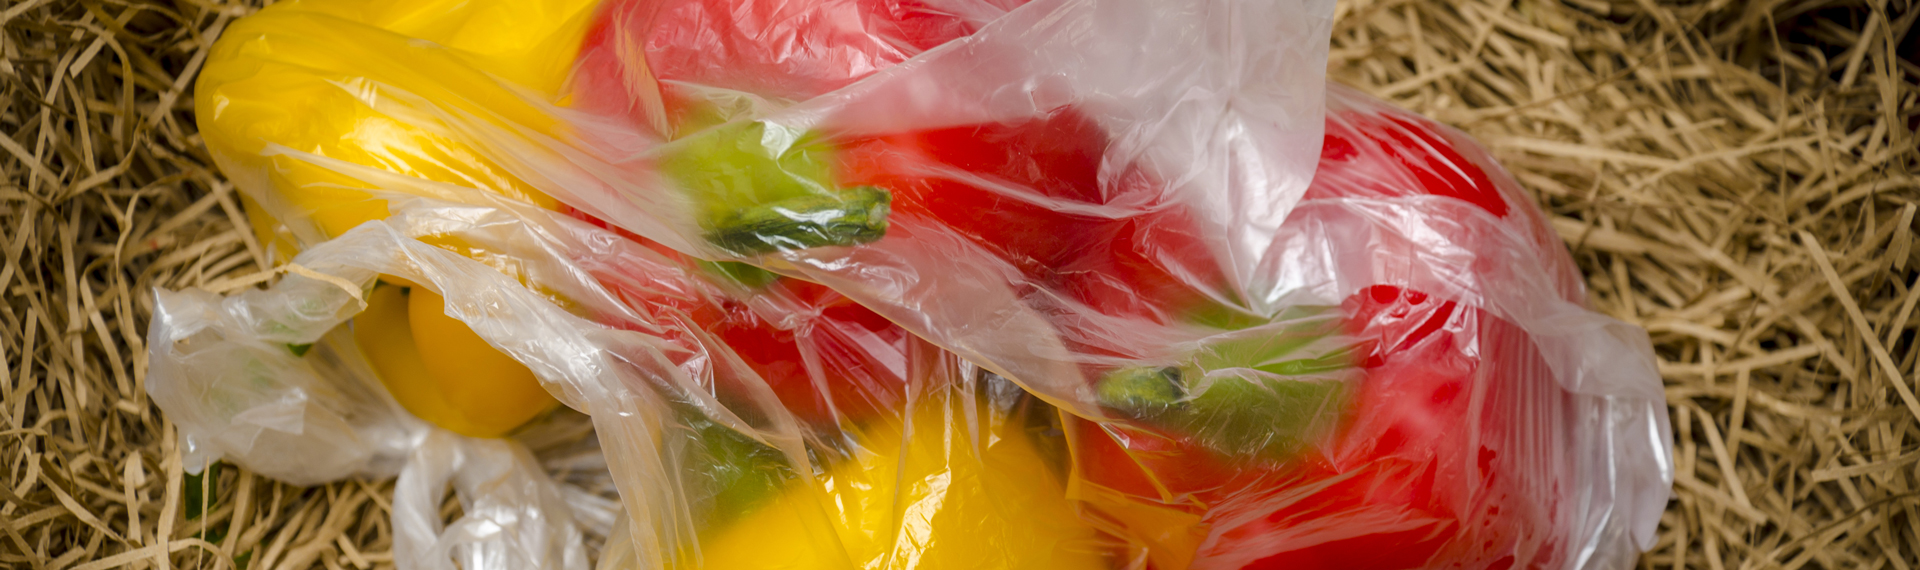 peppers in a produce bag